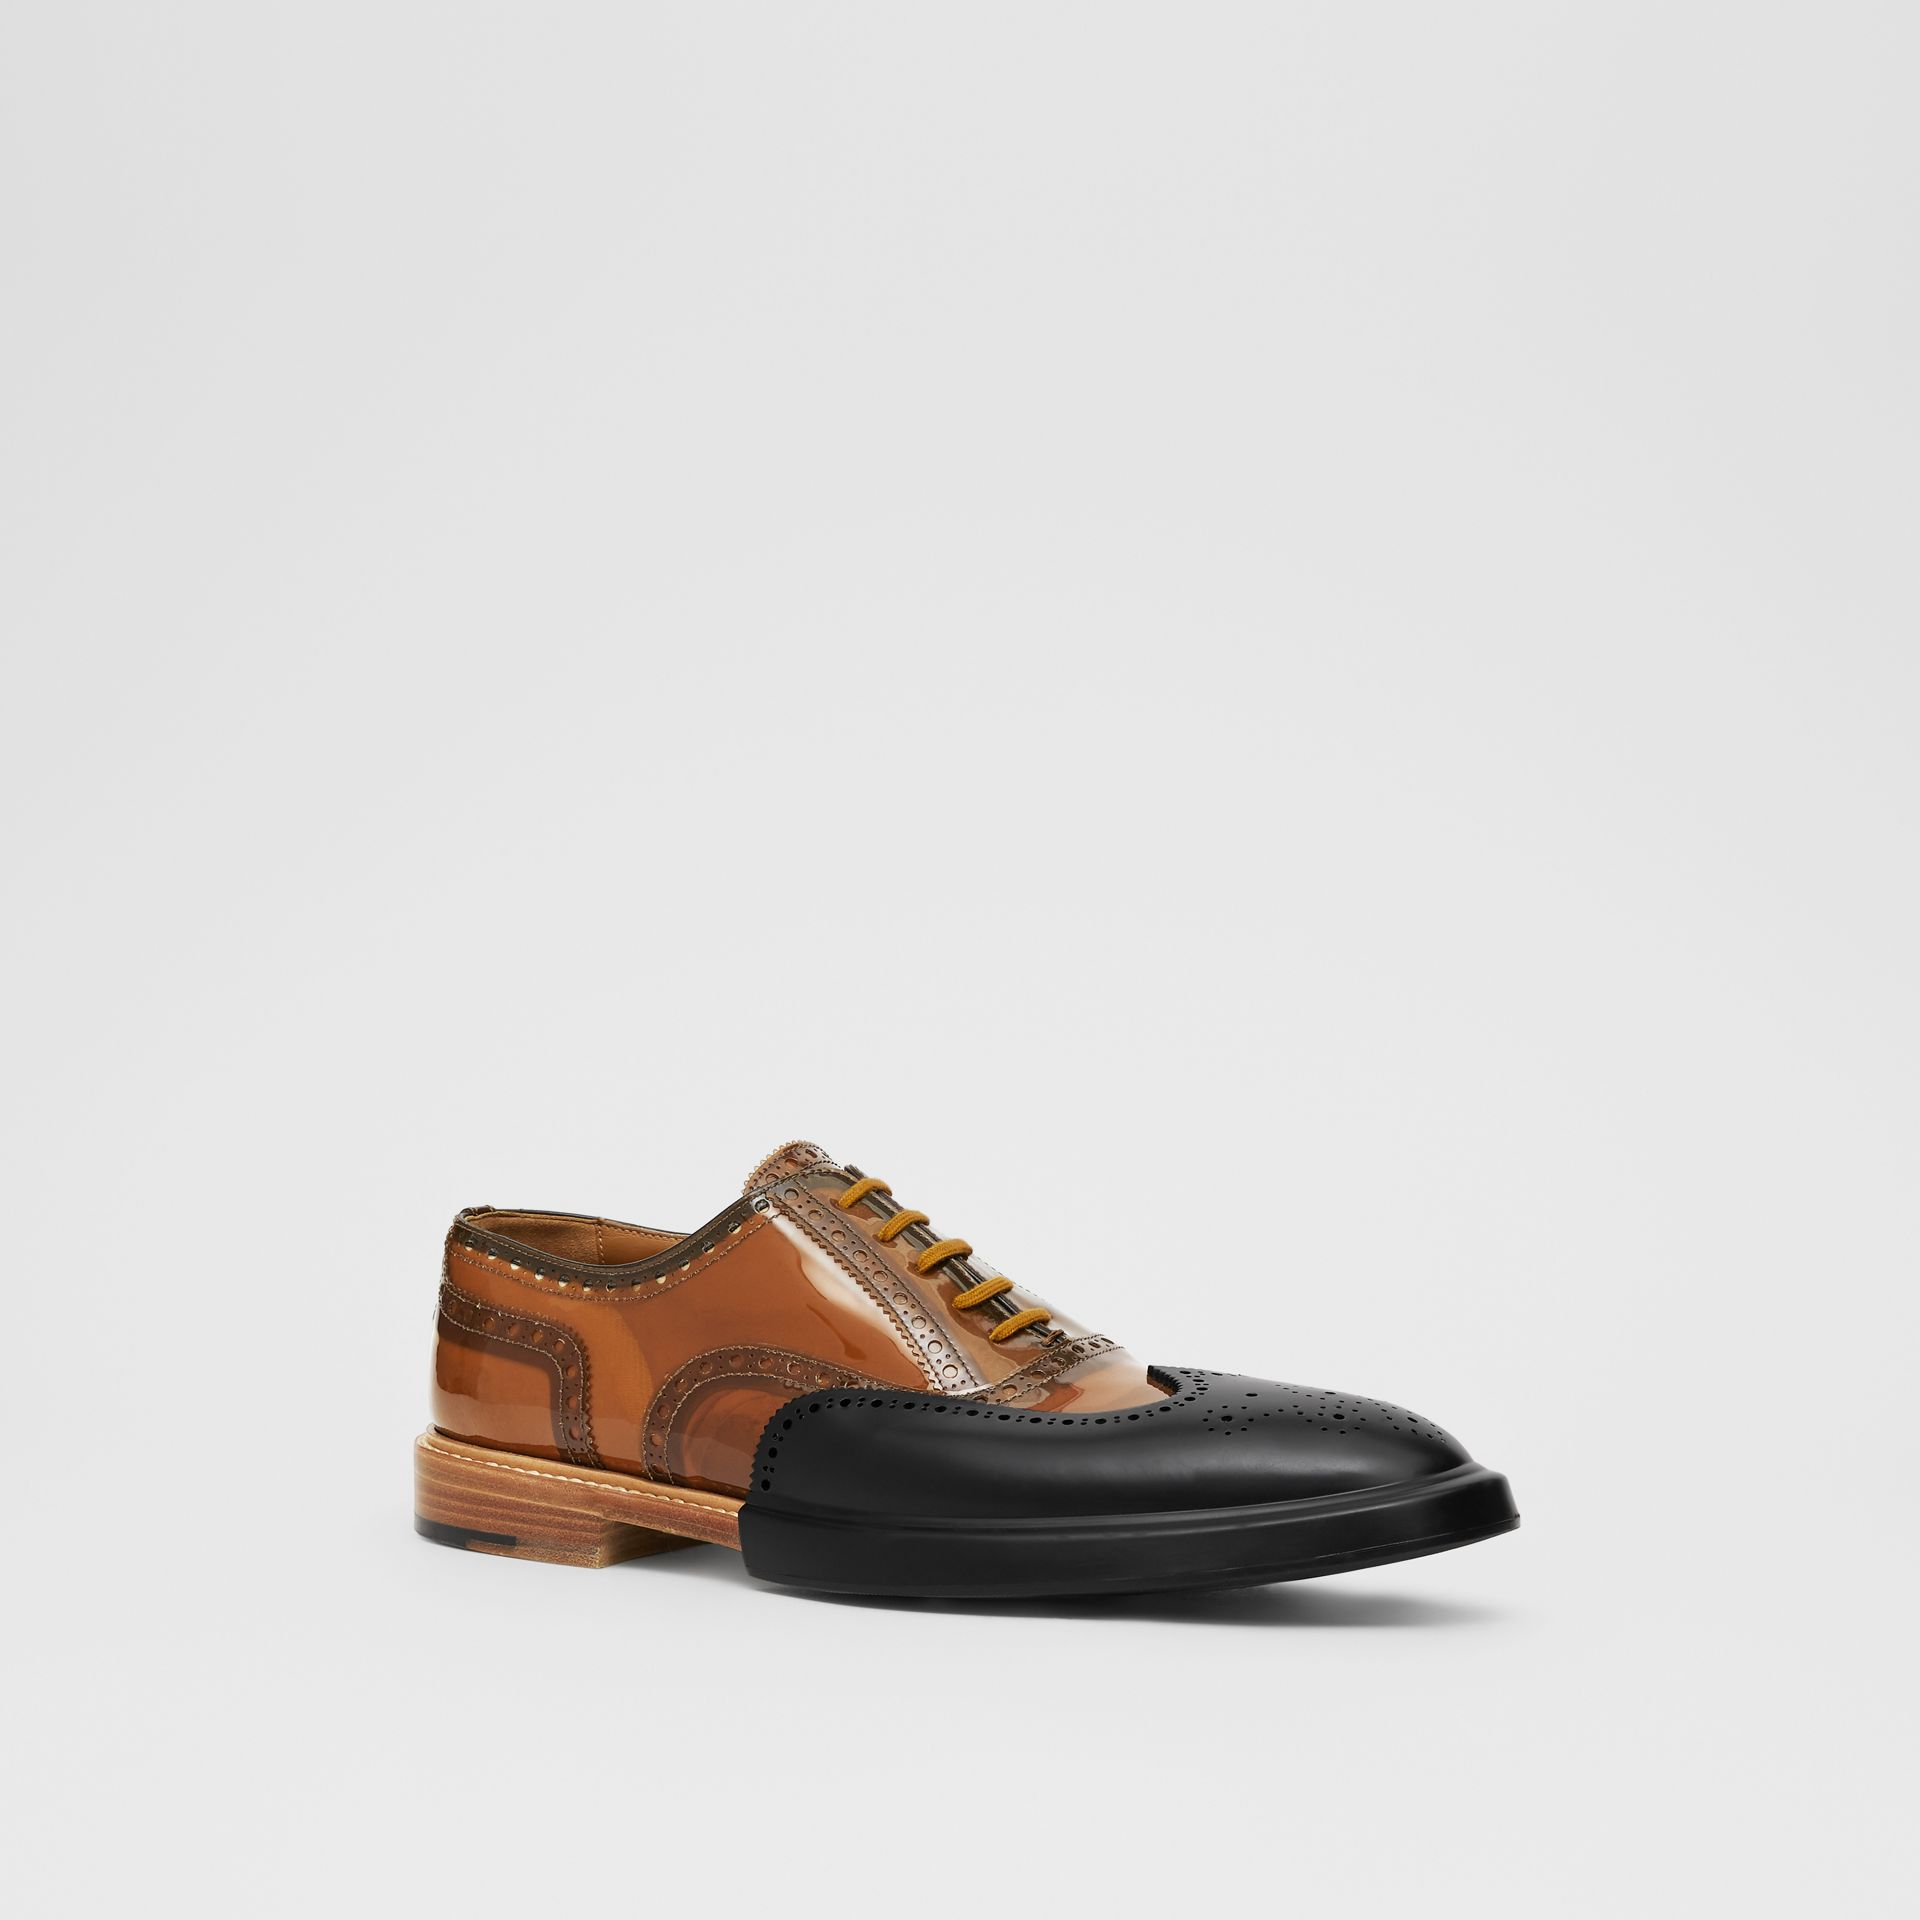 Toe Cap Detail Vinyl and Leather Oxford Brogues in Brown/black - Men | Burberry - gallery image 5